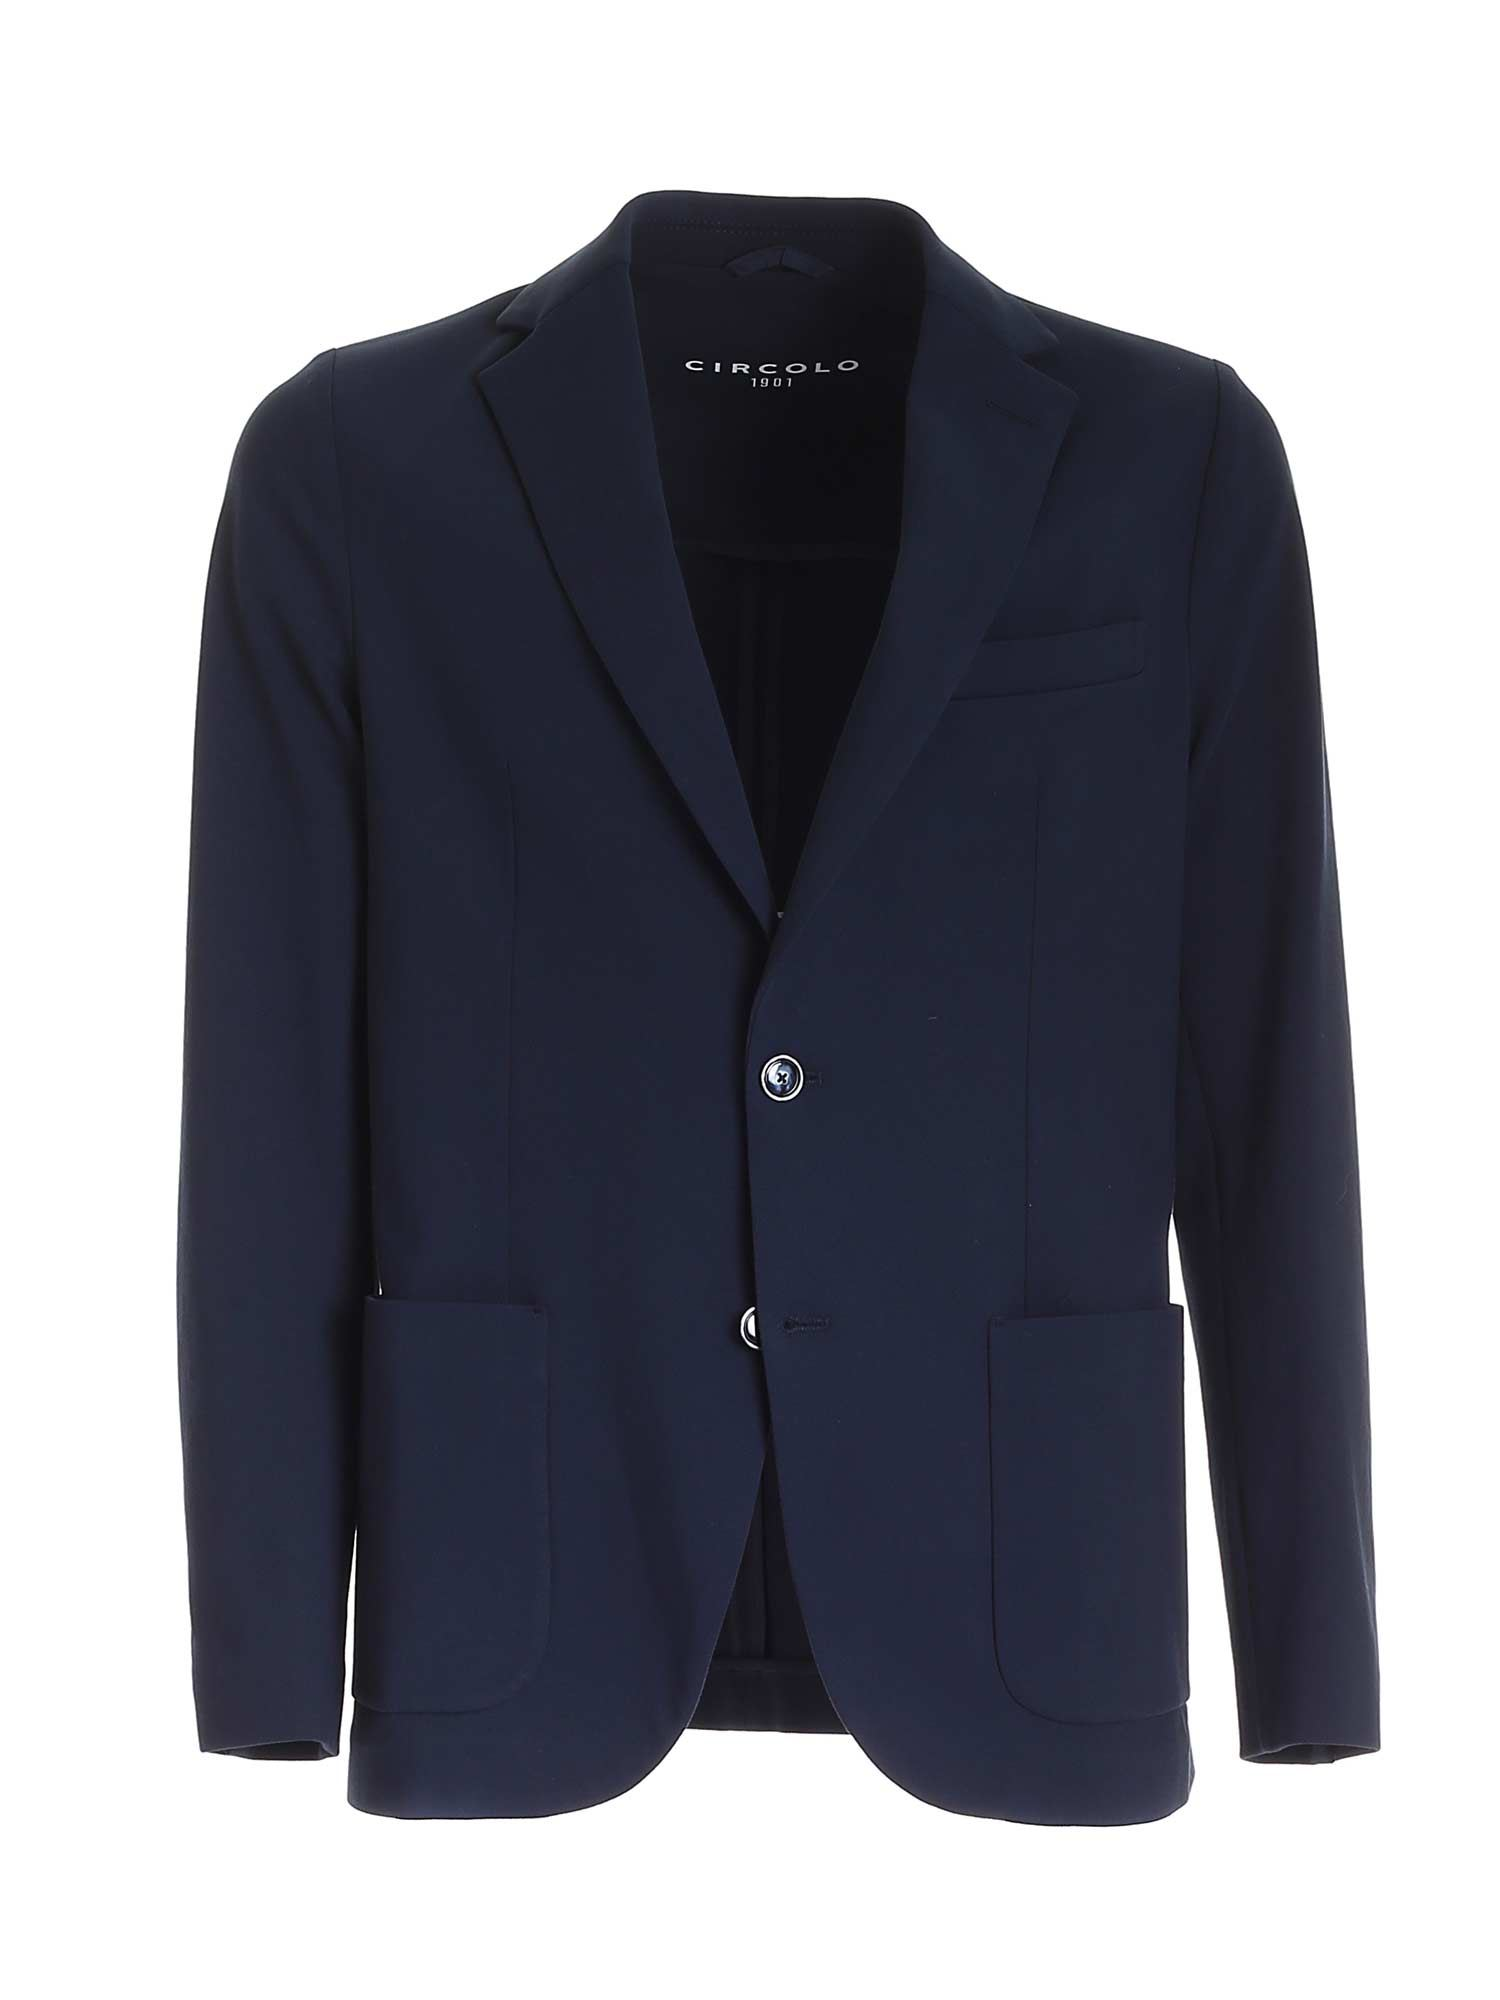 Circolo 1901 SINGLE-BREASTED JACKET IN BLUE